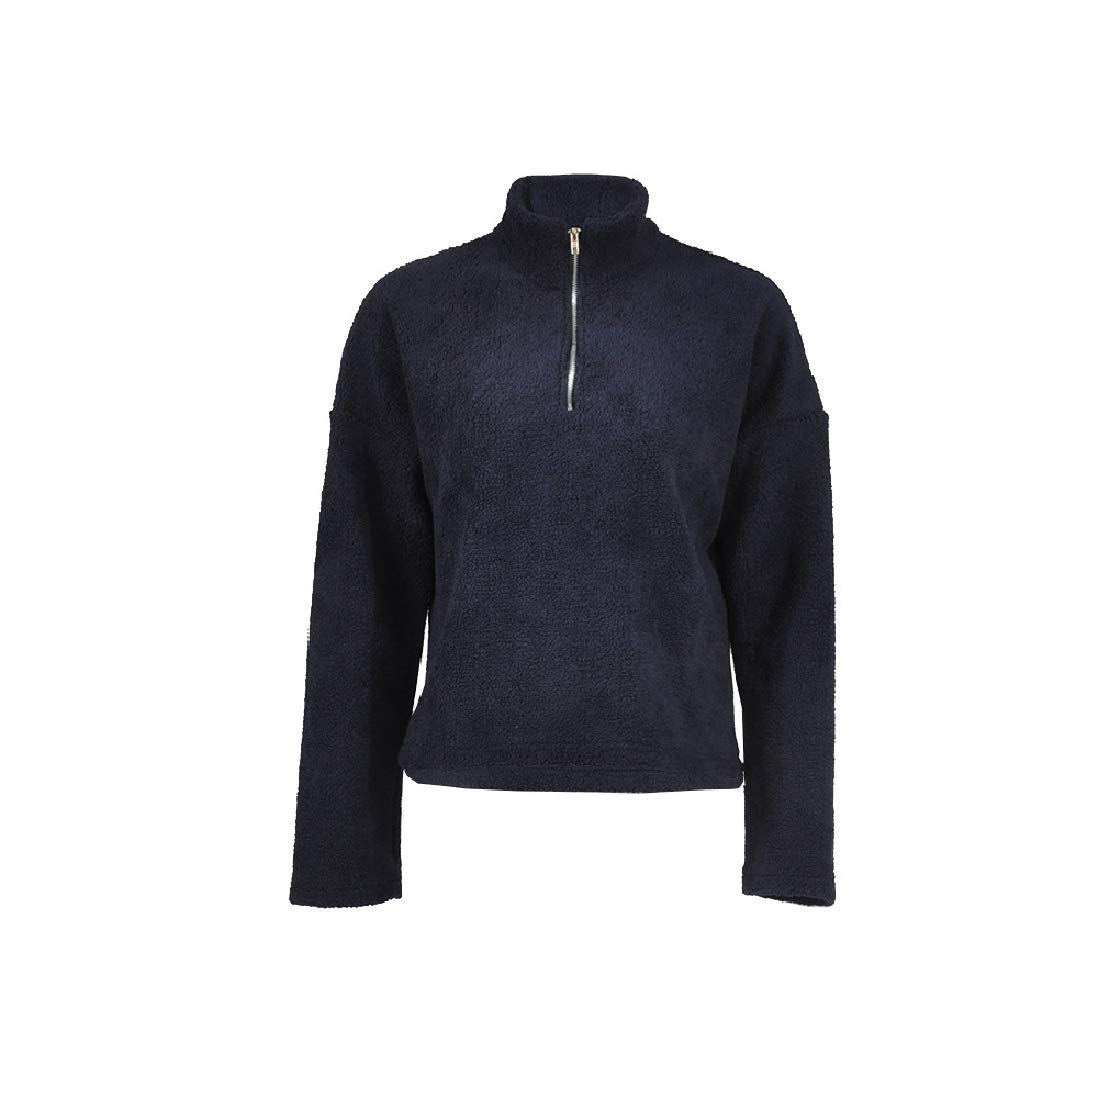 YUNY Women Relaxed Merino Zip-Up High Neck Solid-Colored Topcoat Blue XS